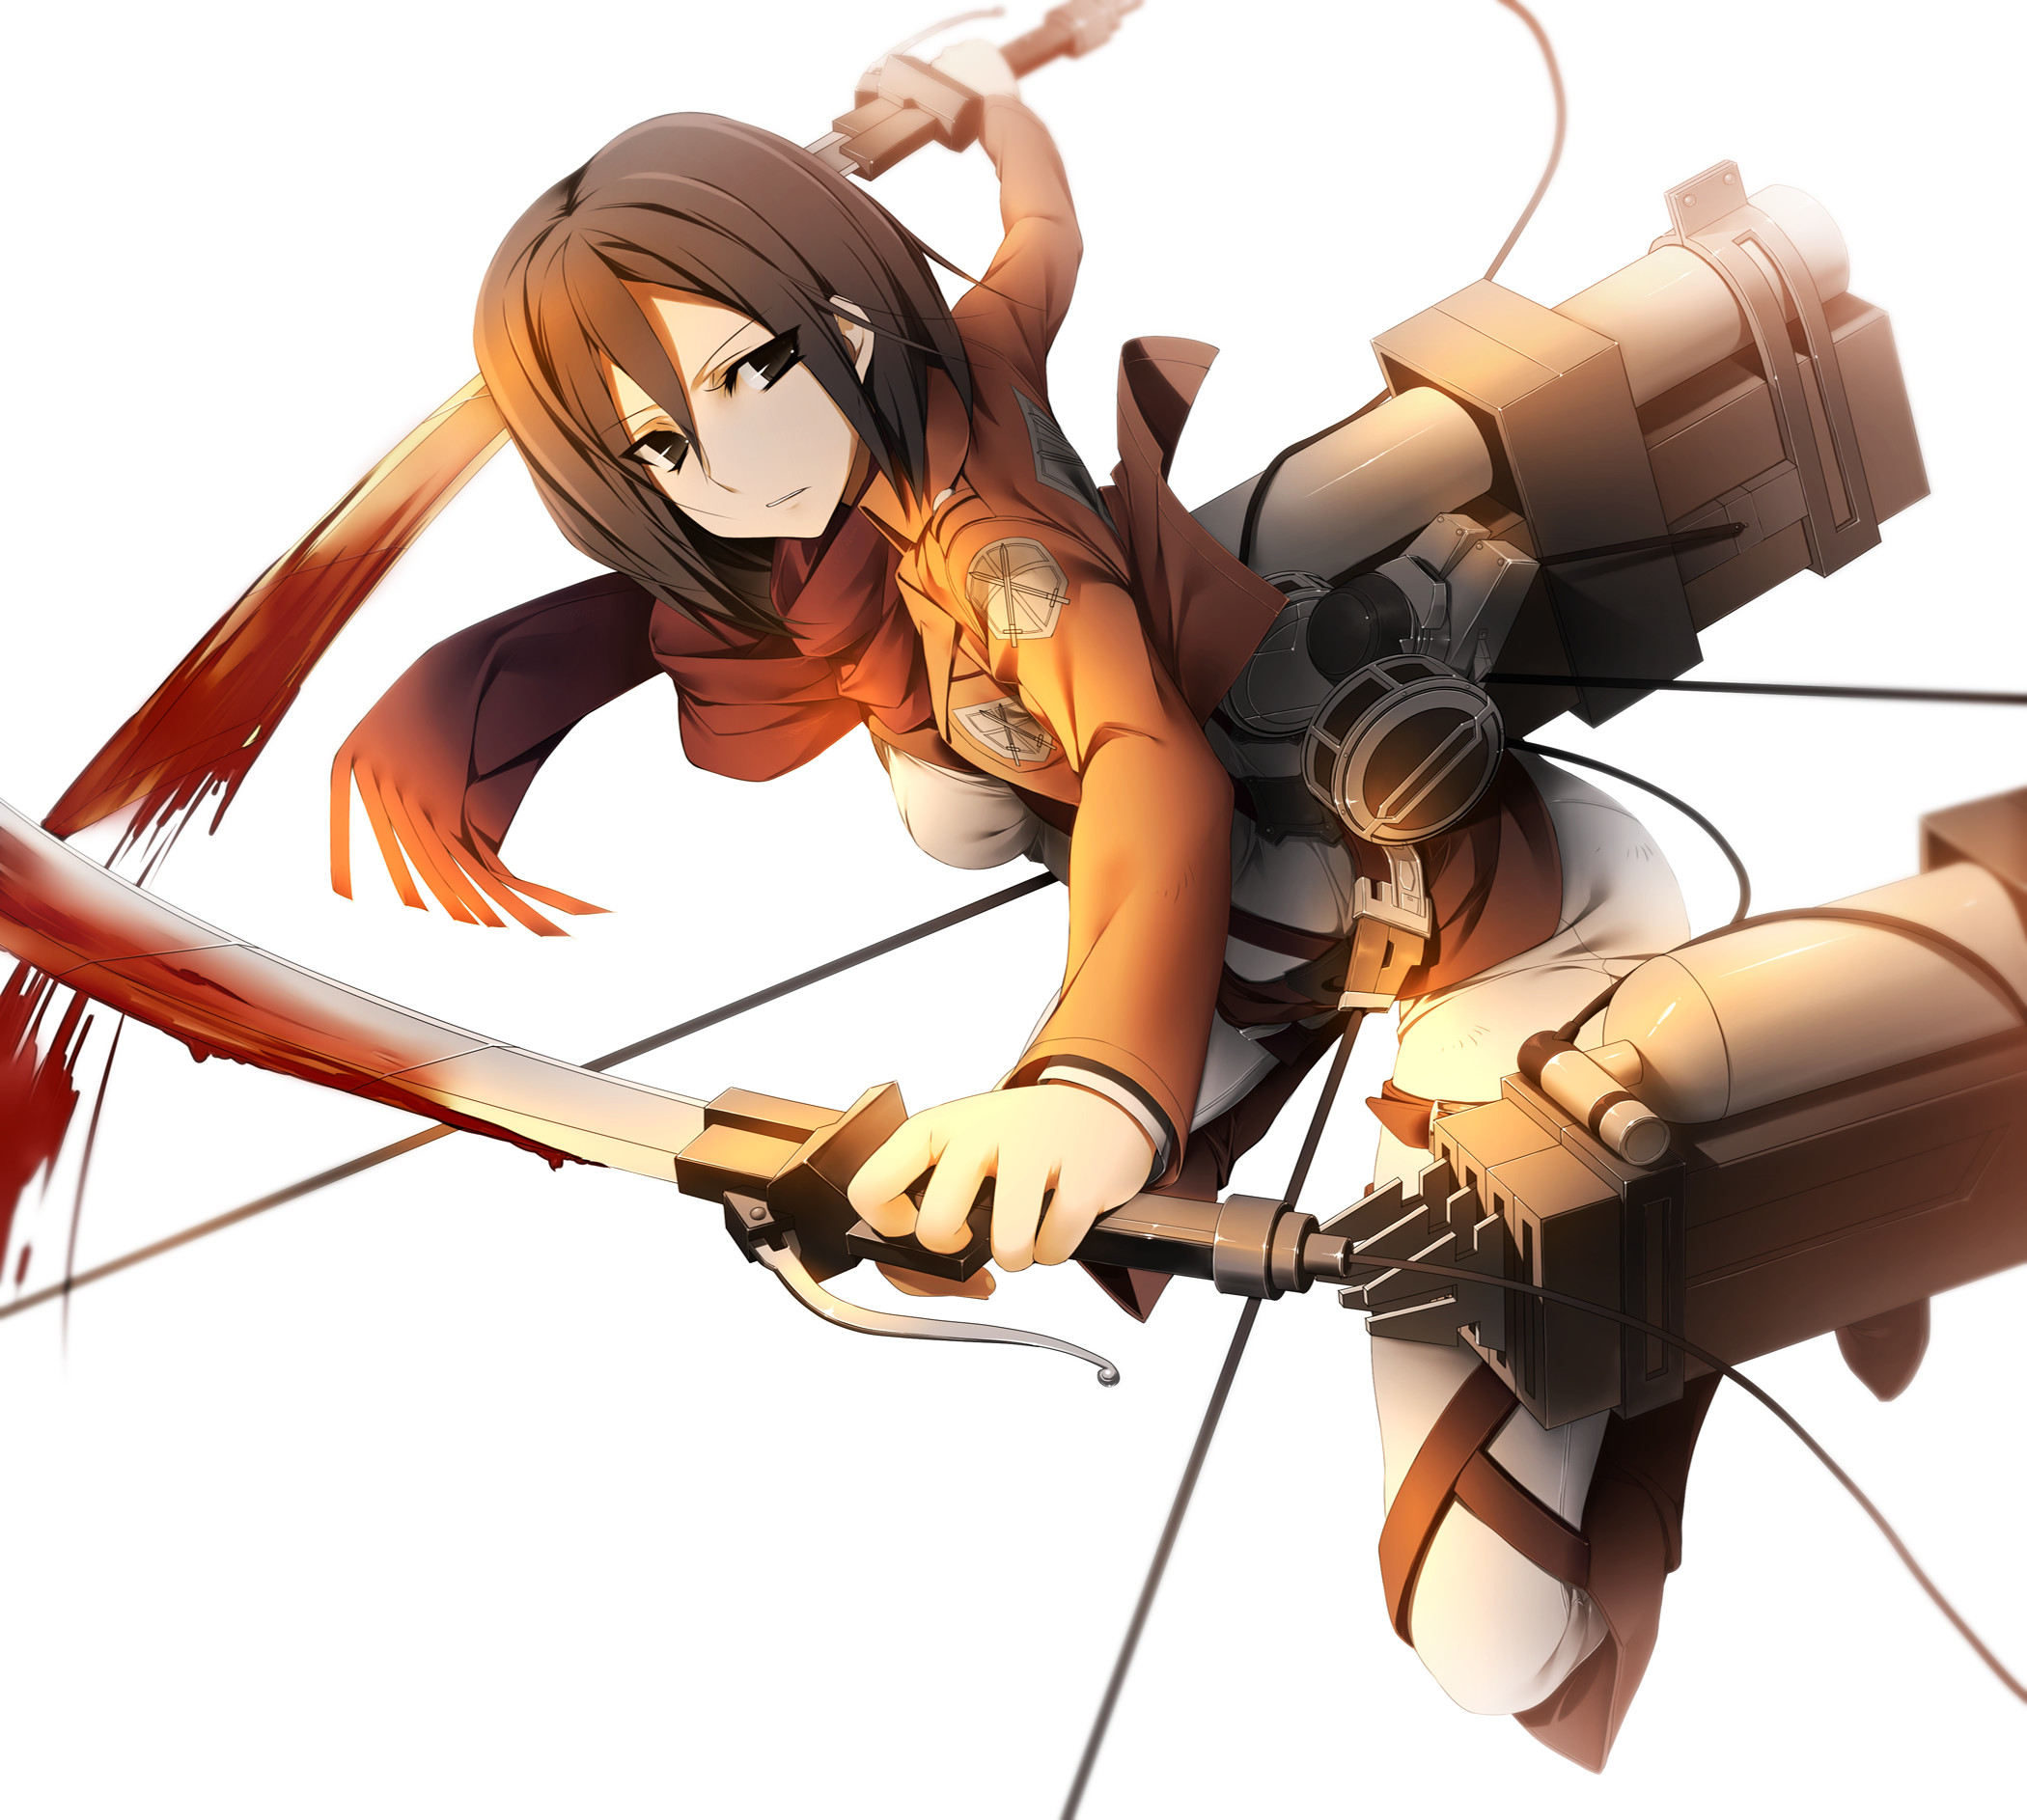 2100x1886 Anime Attack On Titan Mikasa Ackerman Wallpaper